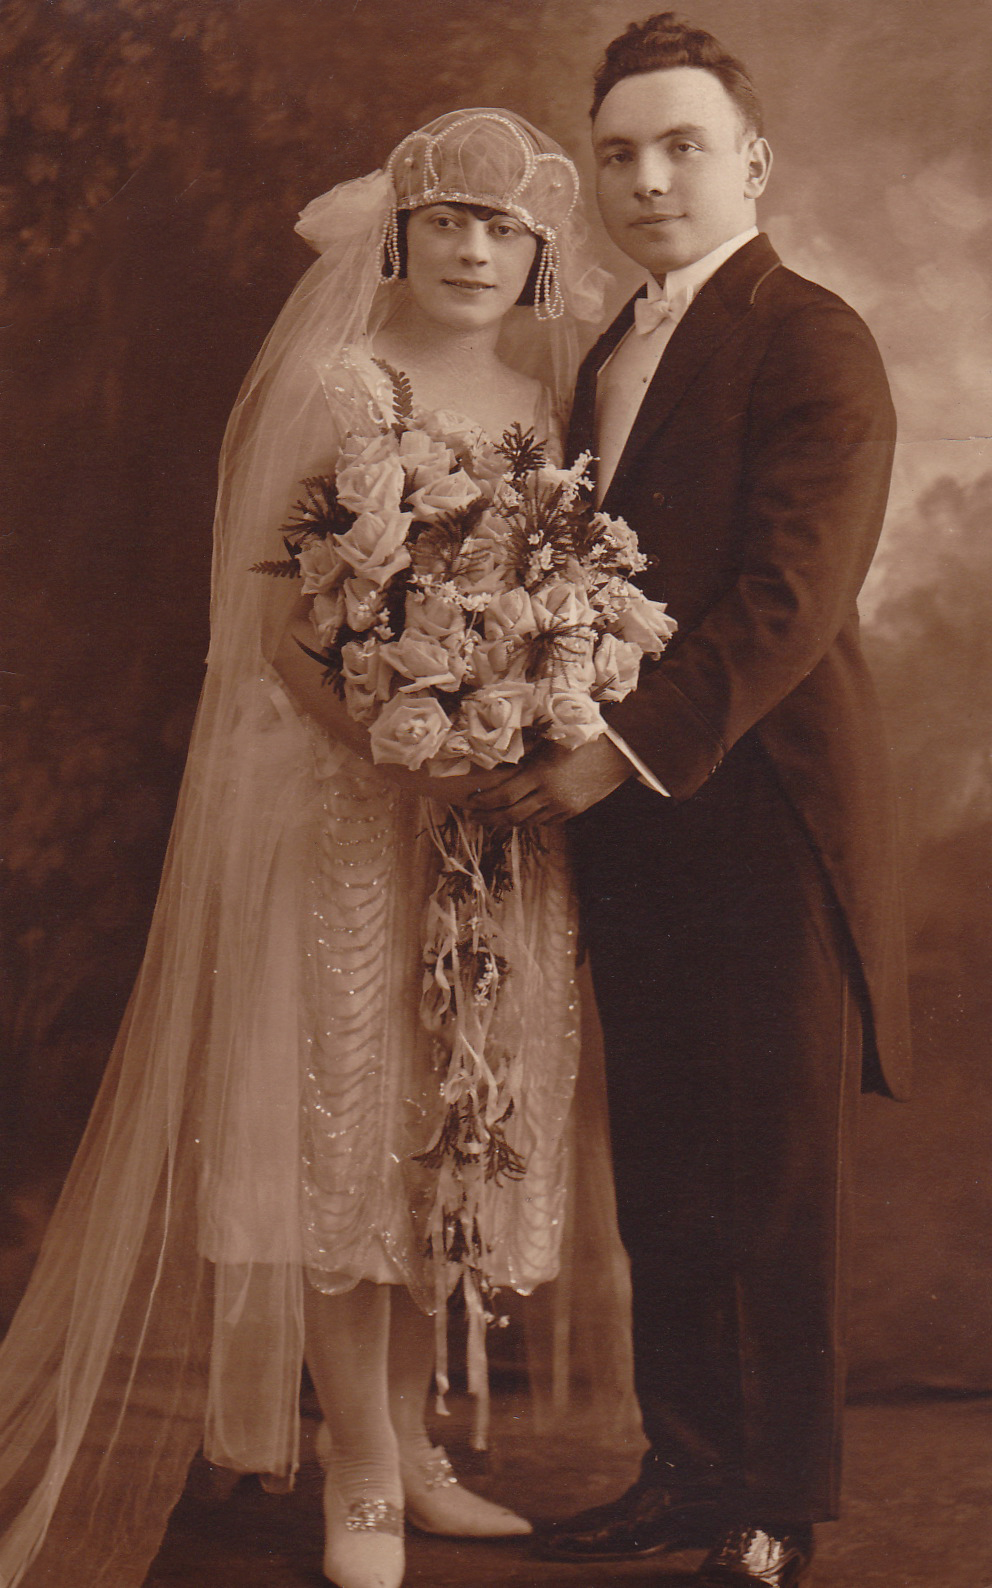 My grandparents, Rose and Max Efros